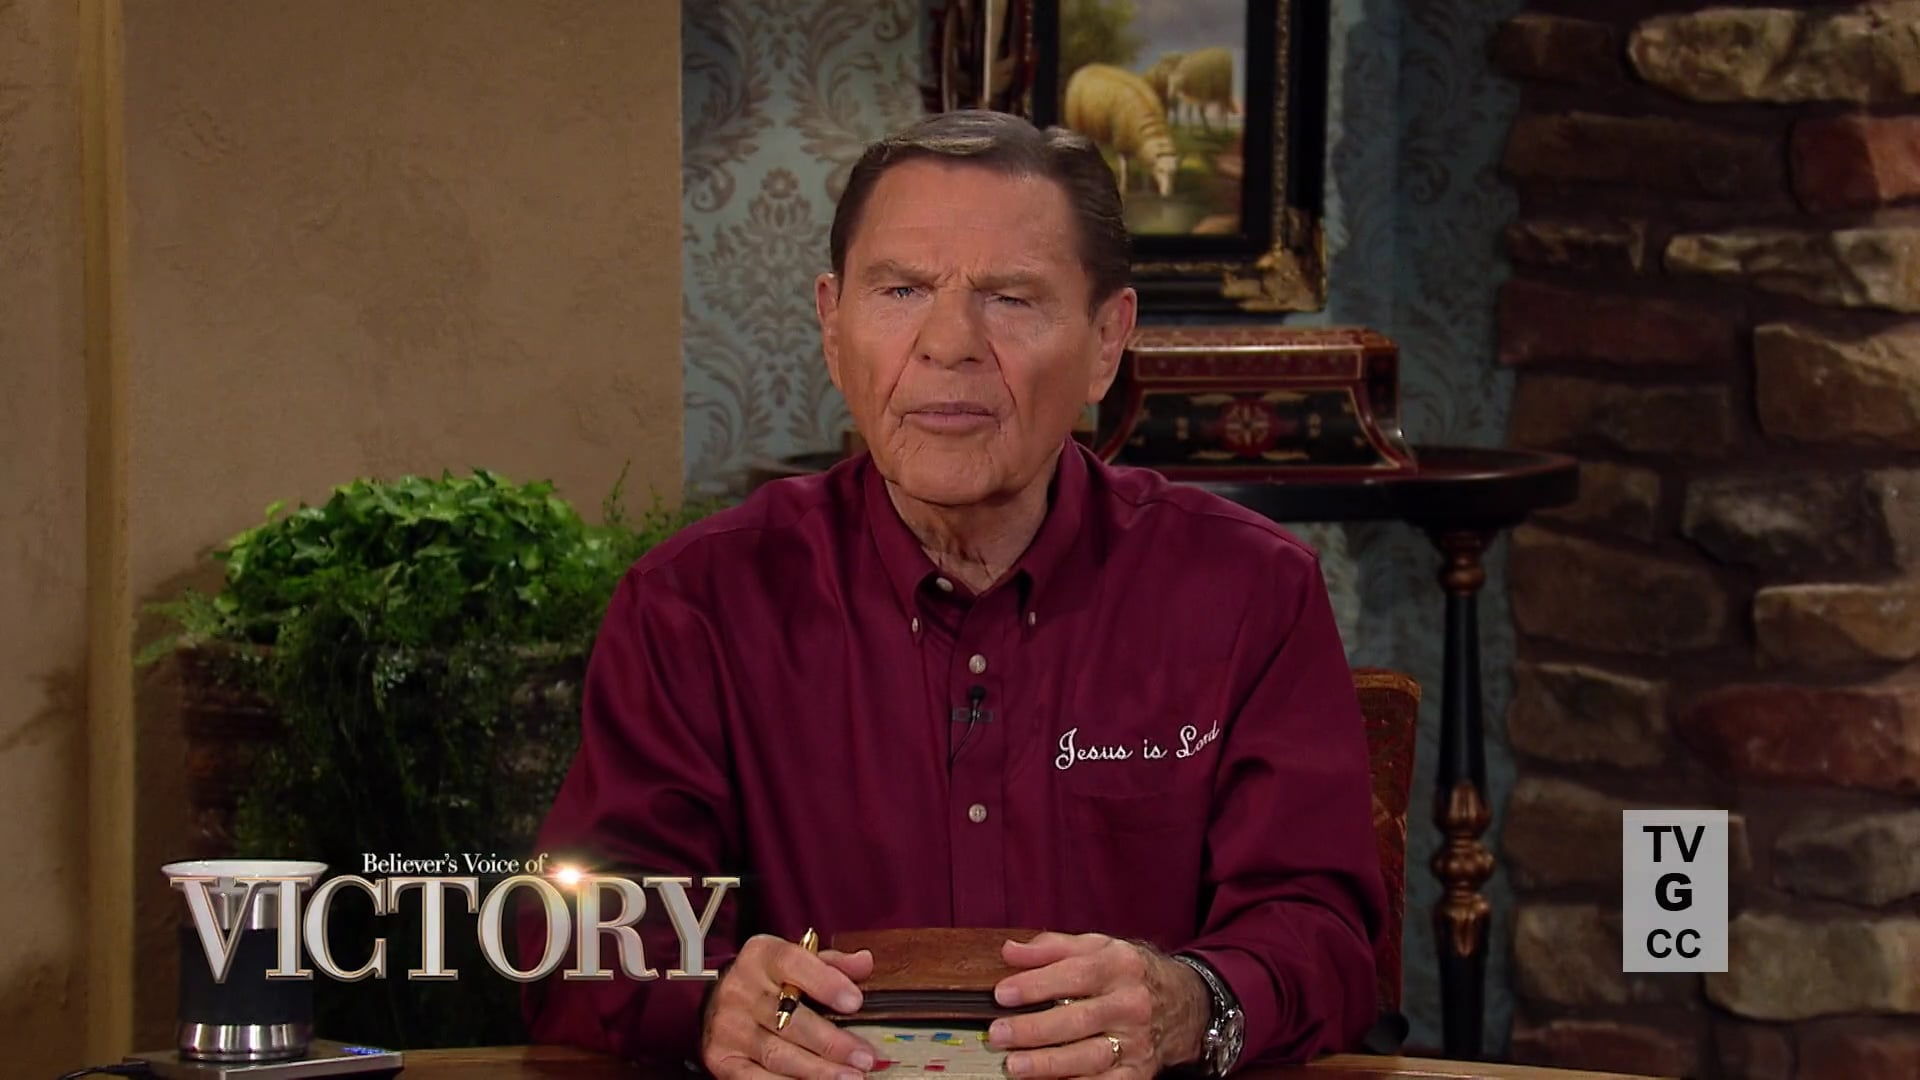 You are BLESSED! Watch Kenneth Copeland and Professor Greg Stephens on Believer's Voice of Victory as they explain why satan can't touch you when you're on THE BLESSING side of life. Learn how to walk in THE BLESSING and live the abundant life promised you through Jesus.